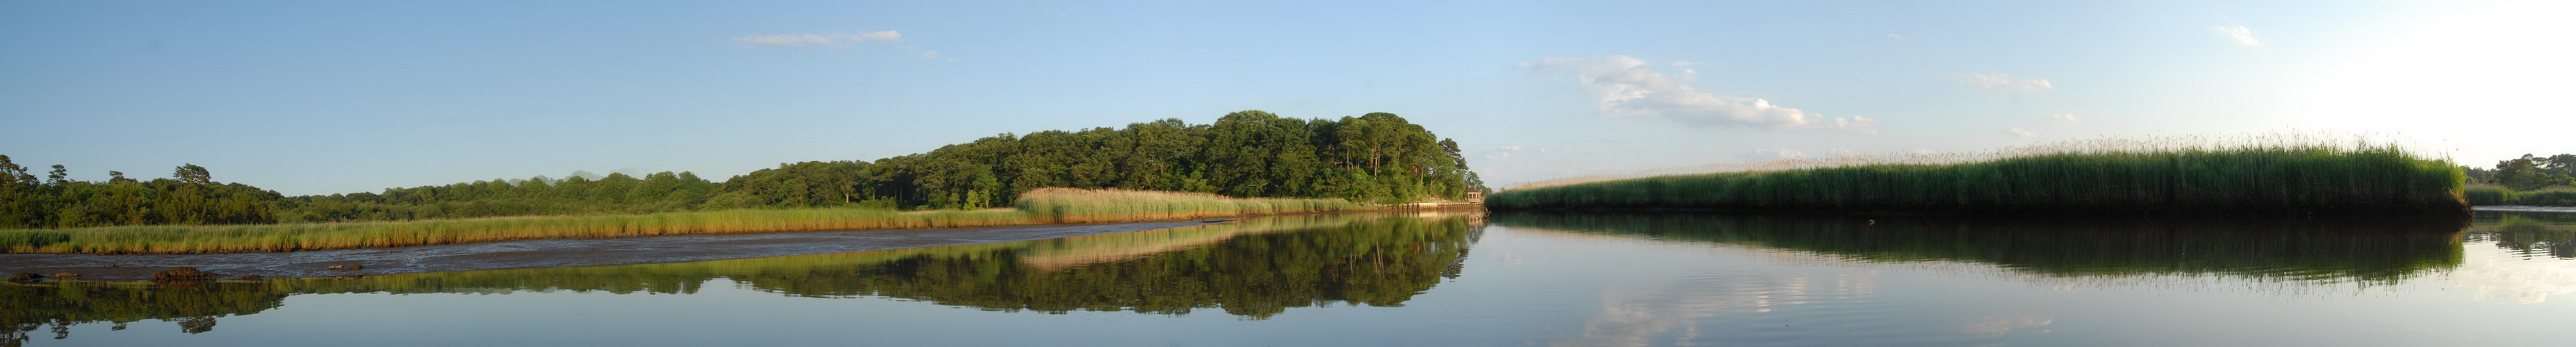 panoramic, blue sky, ground cover, river, riverbank, shoreline, trees, water